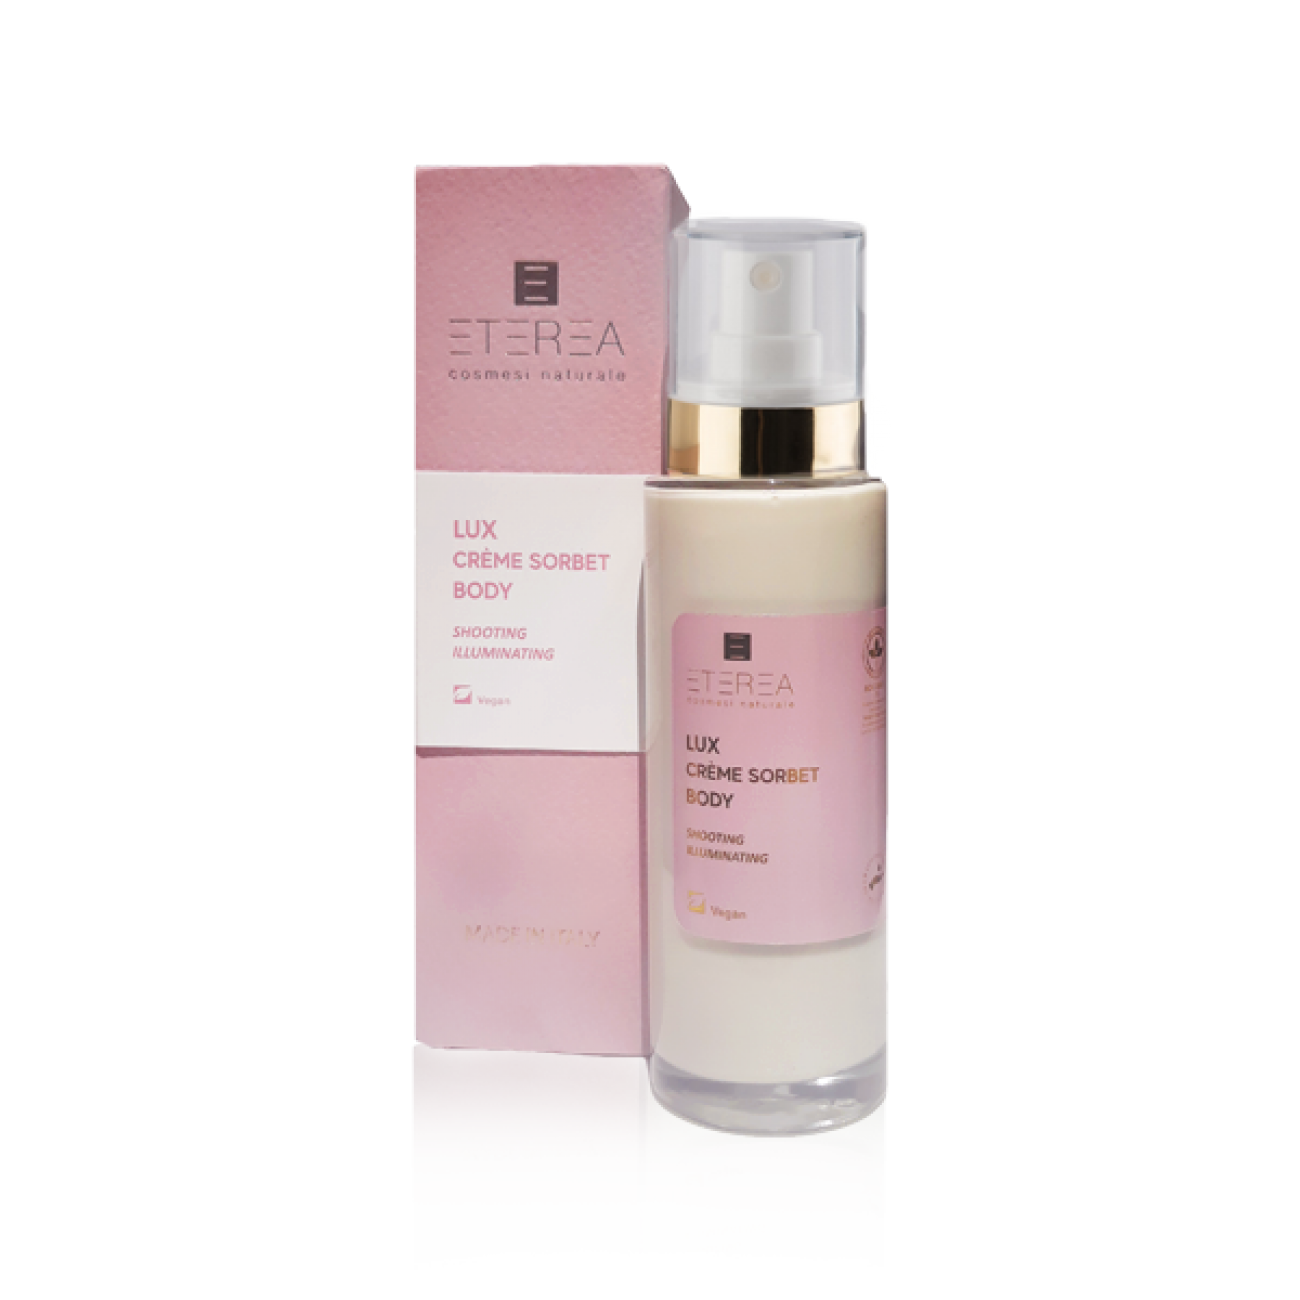 Lux cremeSorbet Body 100ml